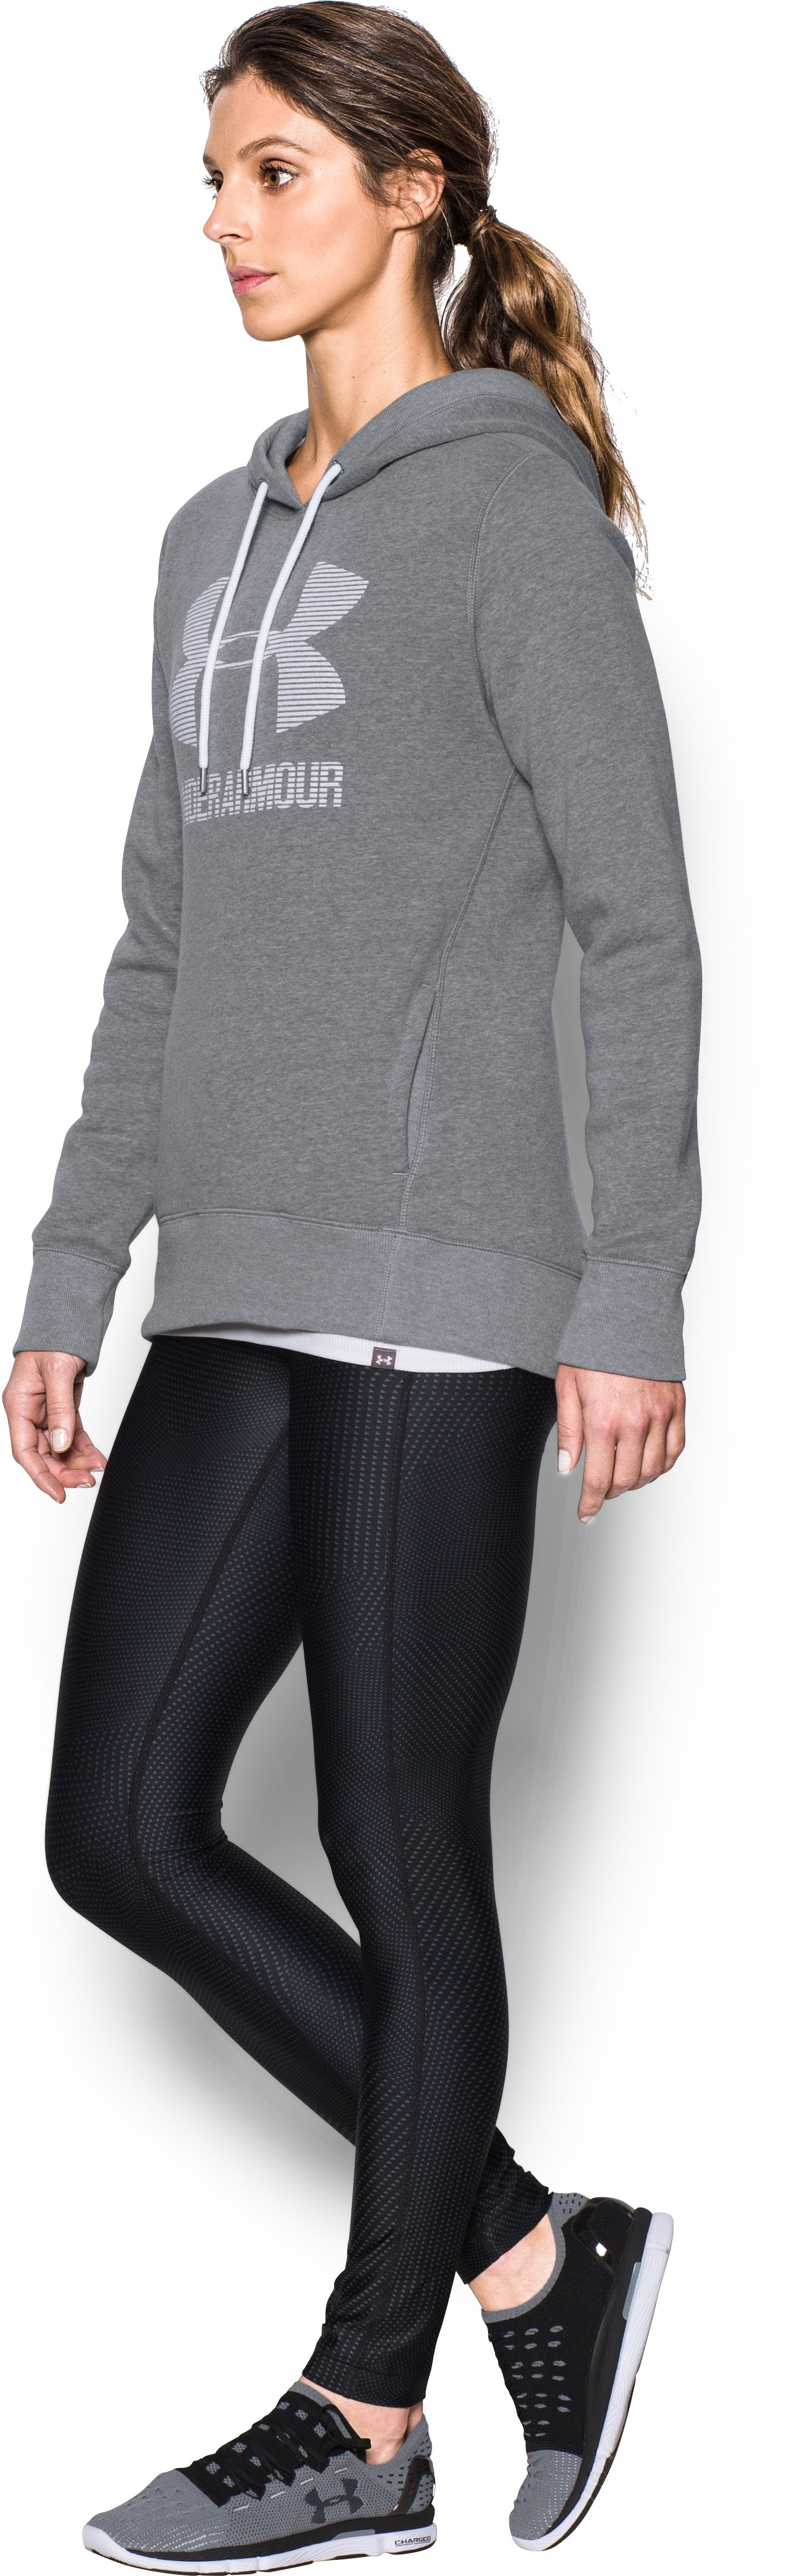 Women's UA Favorite Fleece Sportstyle Hoodie, GRAPHITE LIGHT HEATHER, undefined